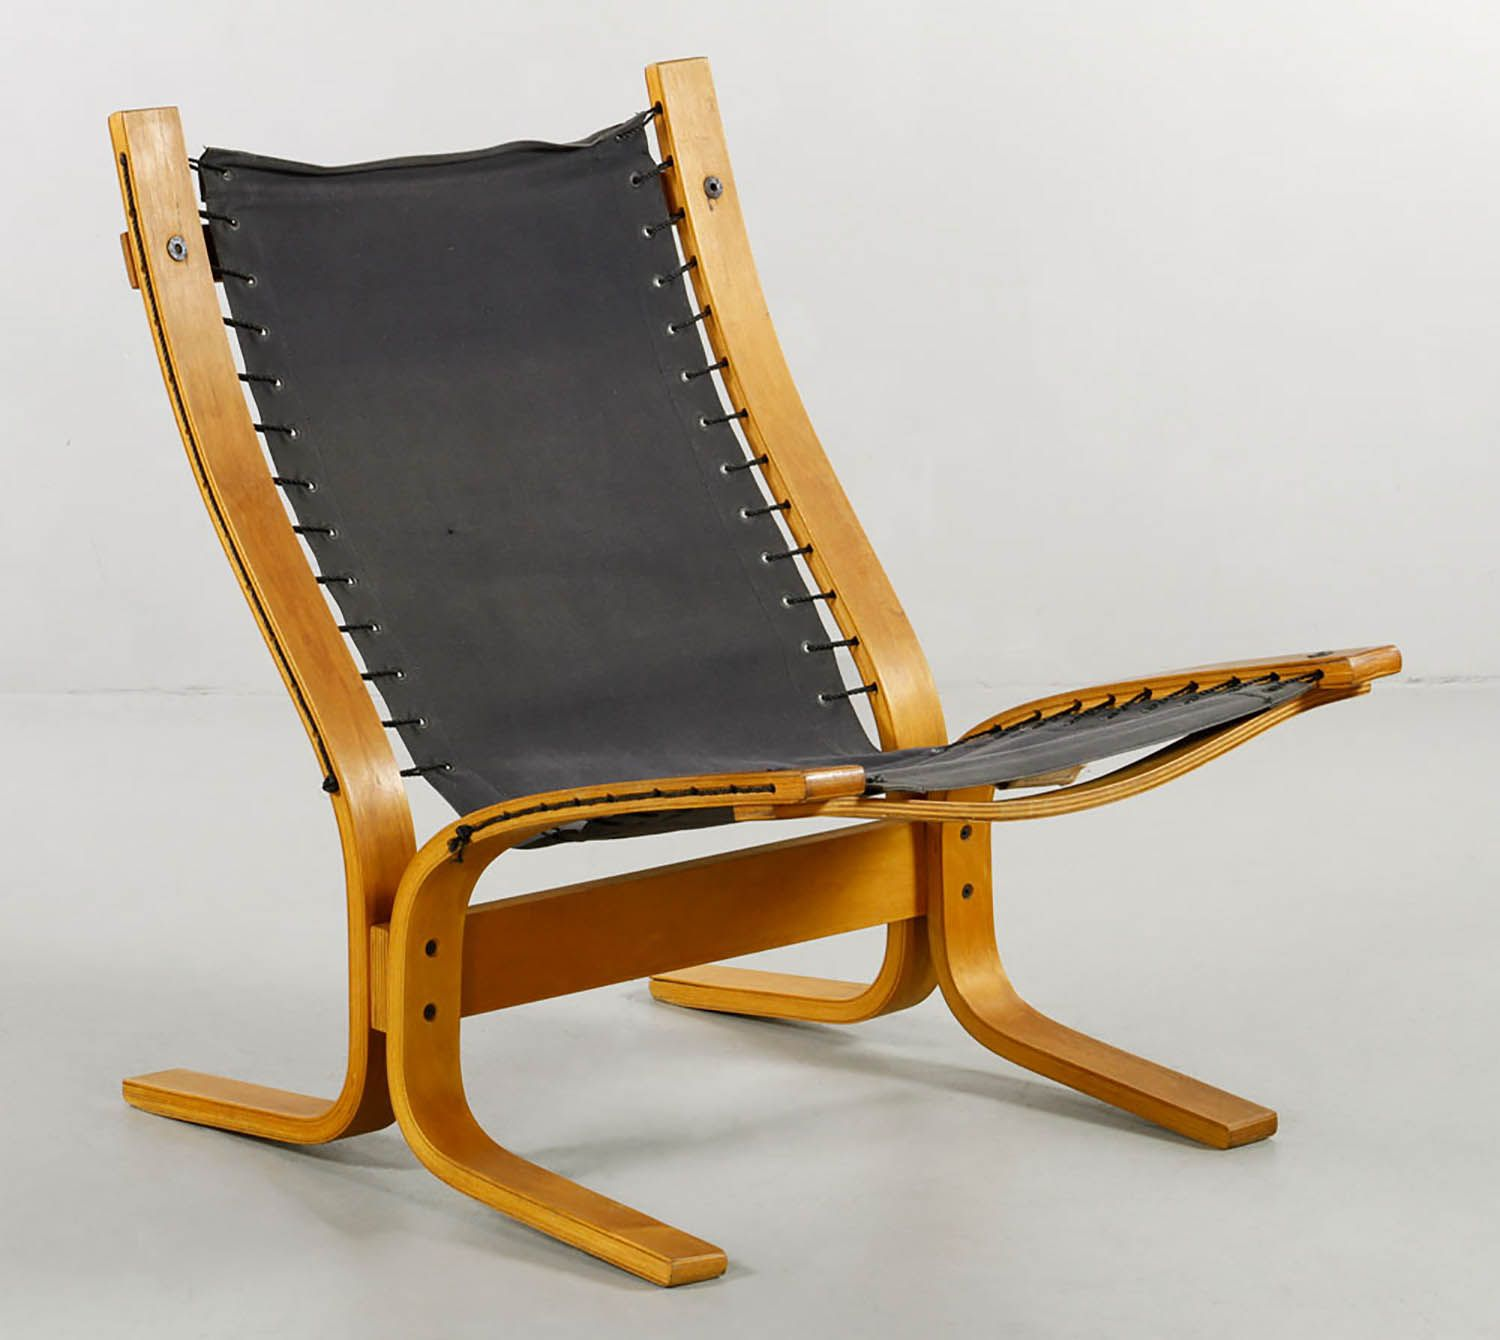 PlyDesigns Bentwood Lounge Chair Plydesigns, Canada, Lounge Chair, Bentwood  With Canvas Fabric Seat